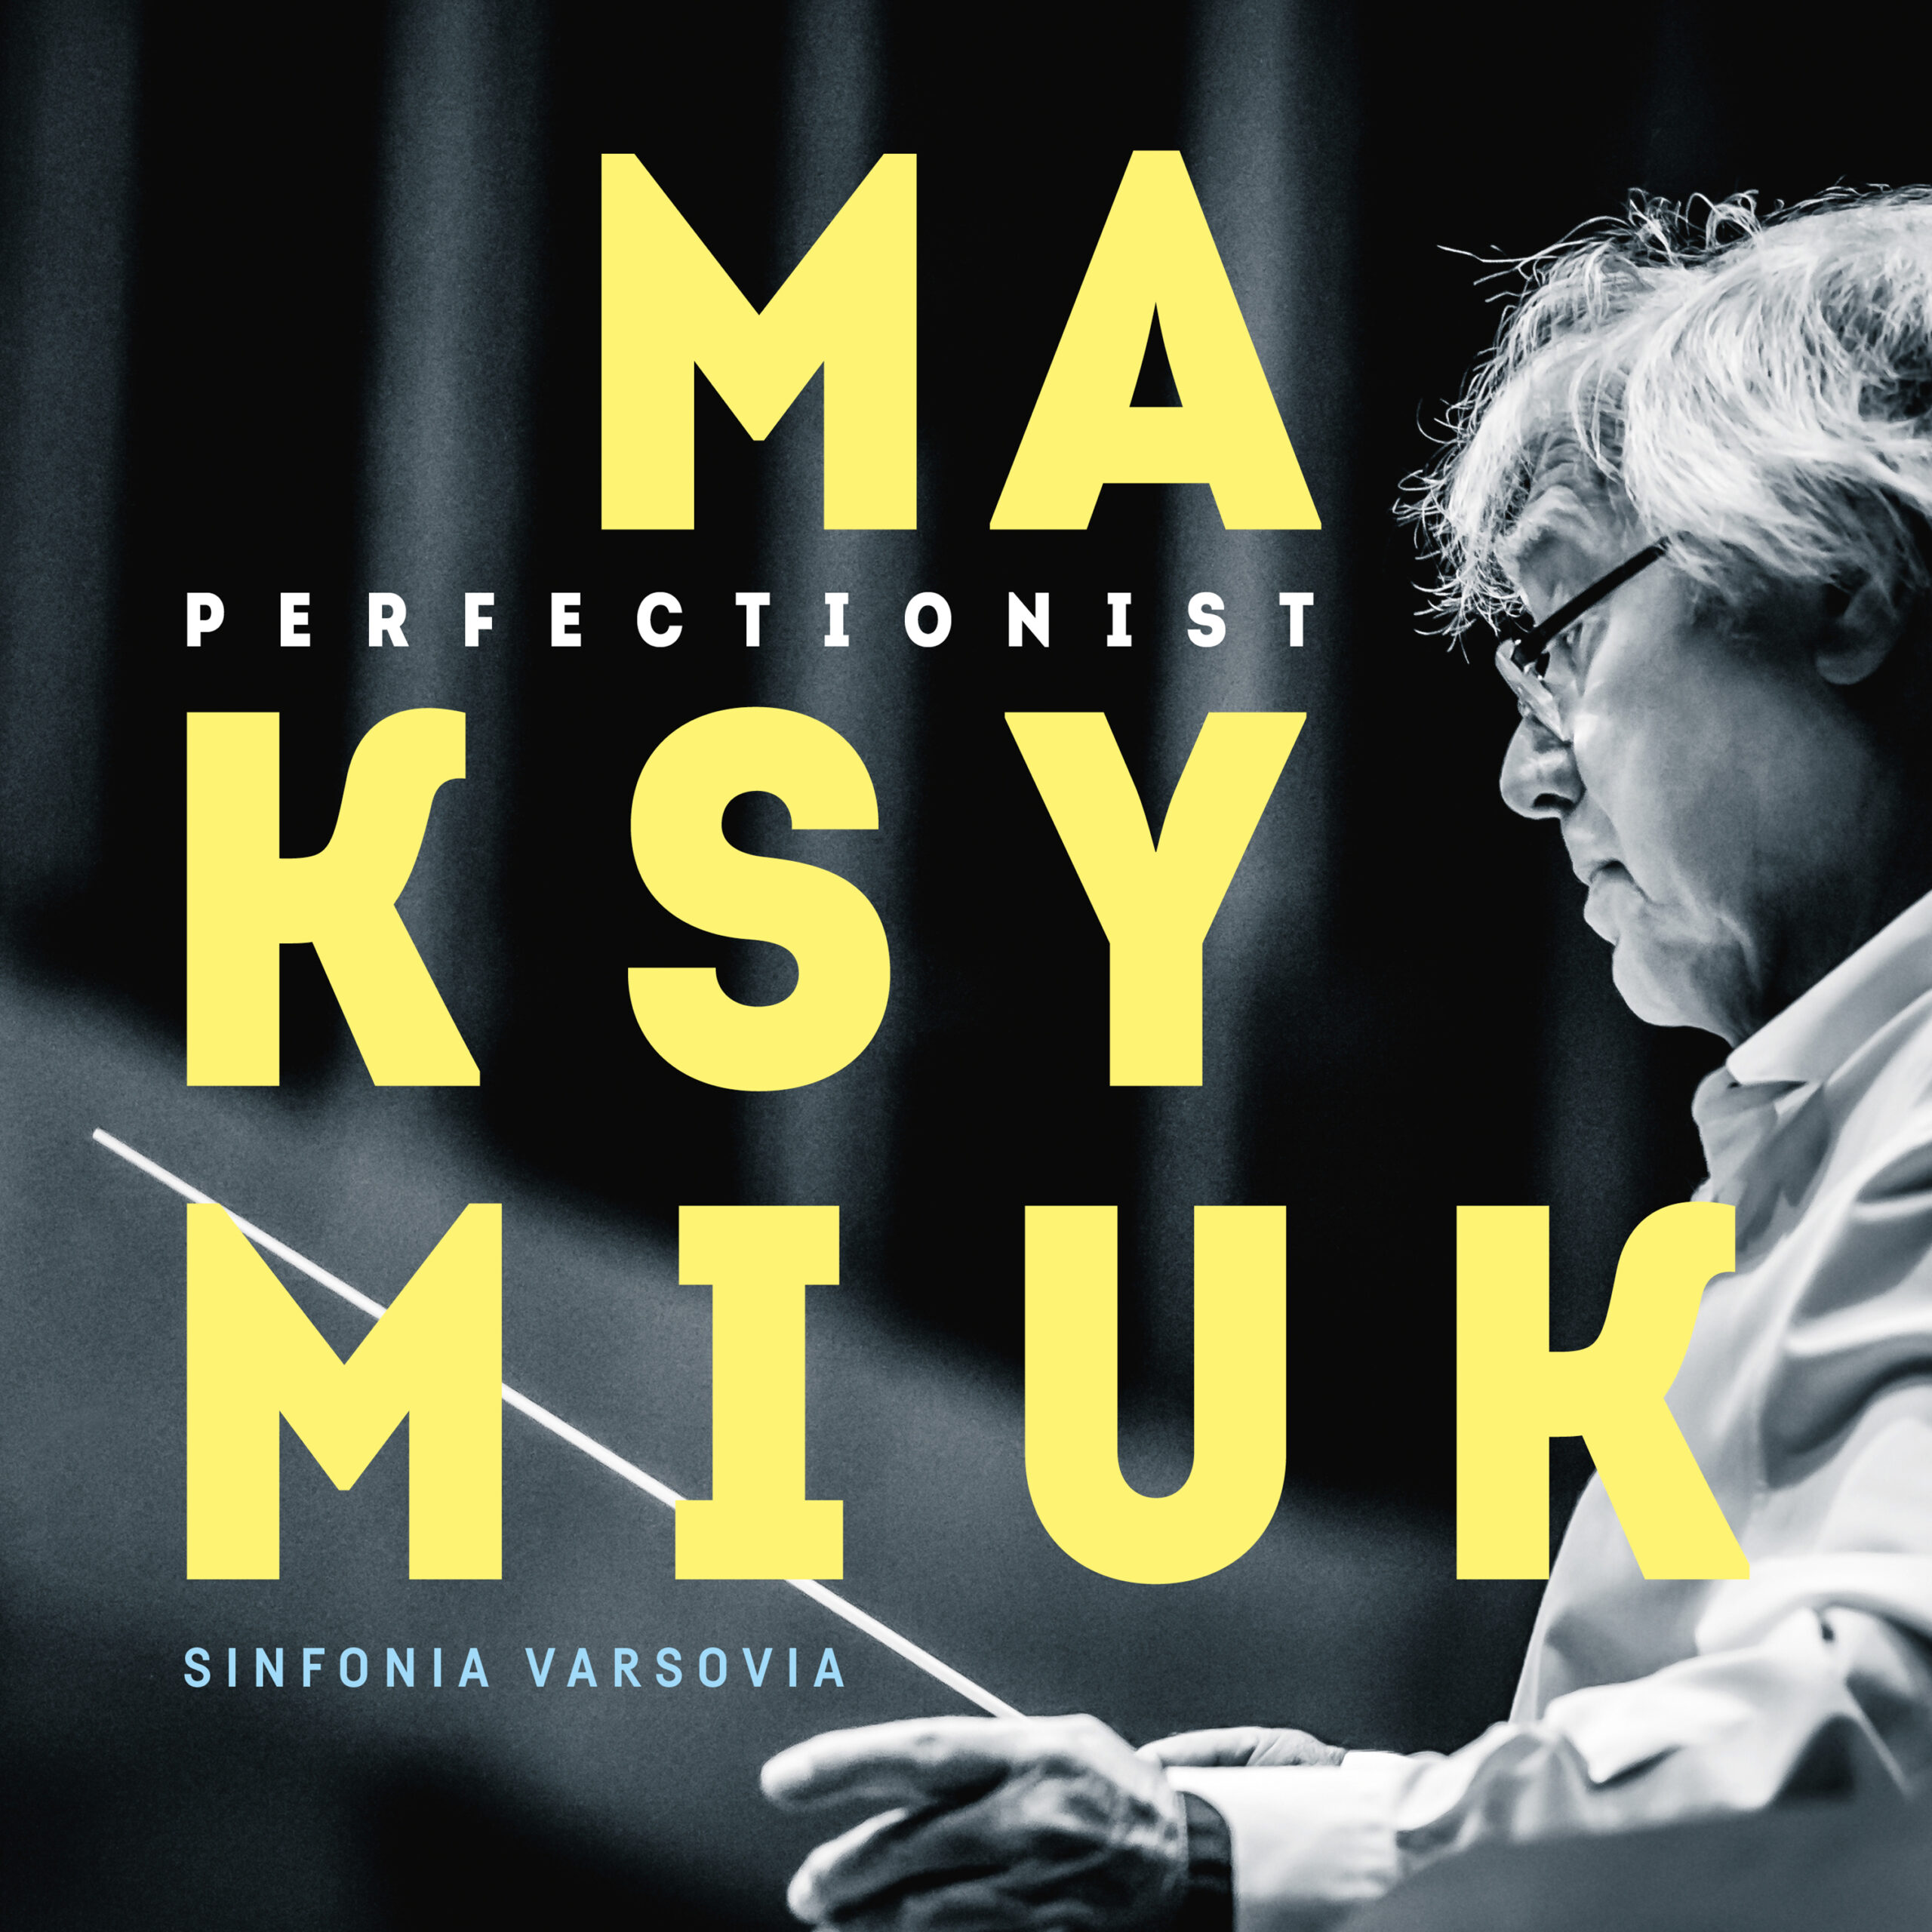 New Album Release: Sinfonia Varsovia and Jerzy Maksymiuk